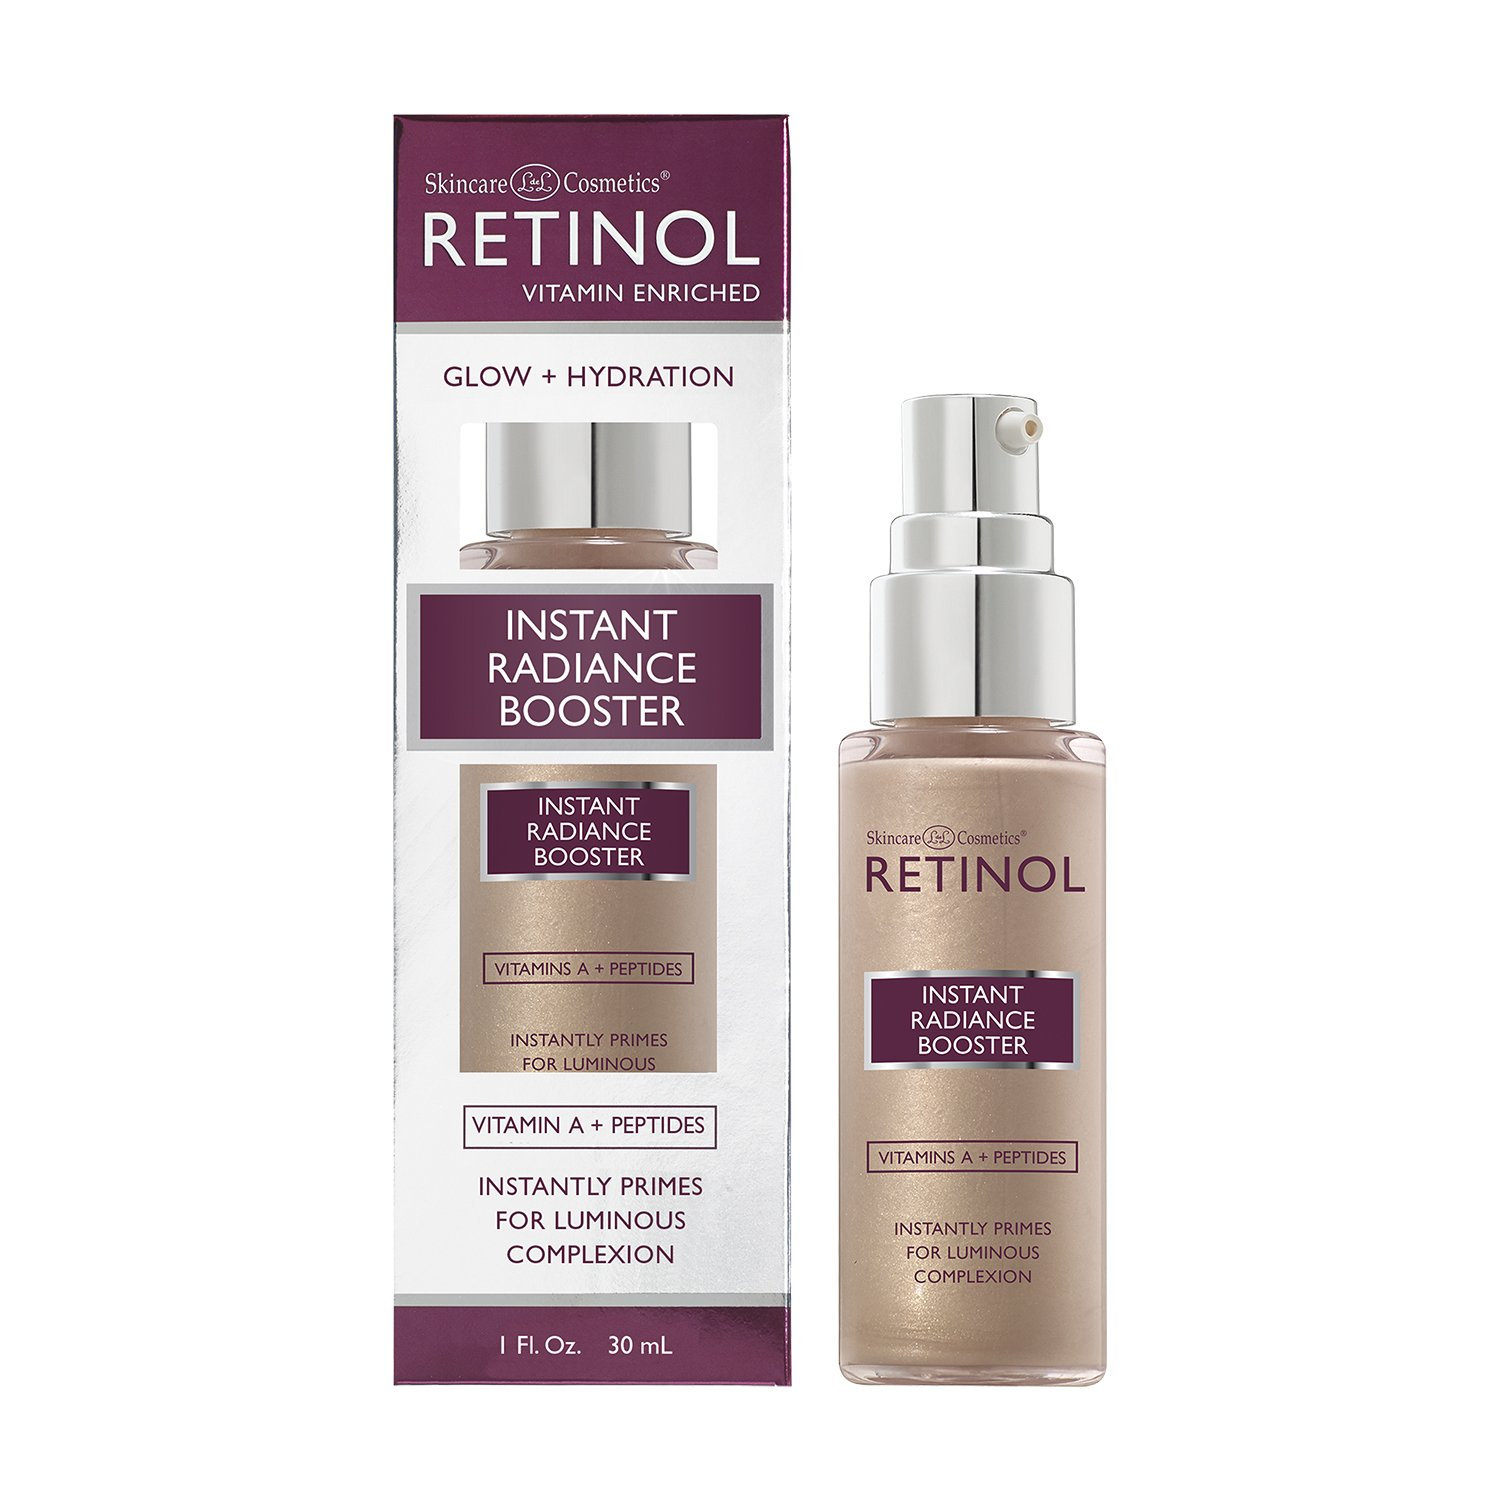 Retinol Instant Radiance Booster – The Original Retinol Glow Primer – A Burst of Anti-Aging Hydration Adds Luminosity & Skin-Smoothing Benefits of Vitamin A – Peptides Improve Firmness & Tone